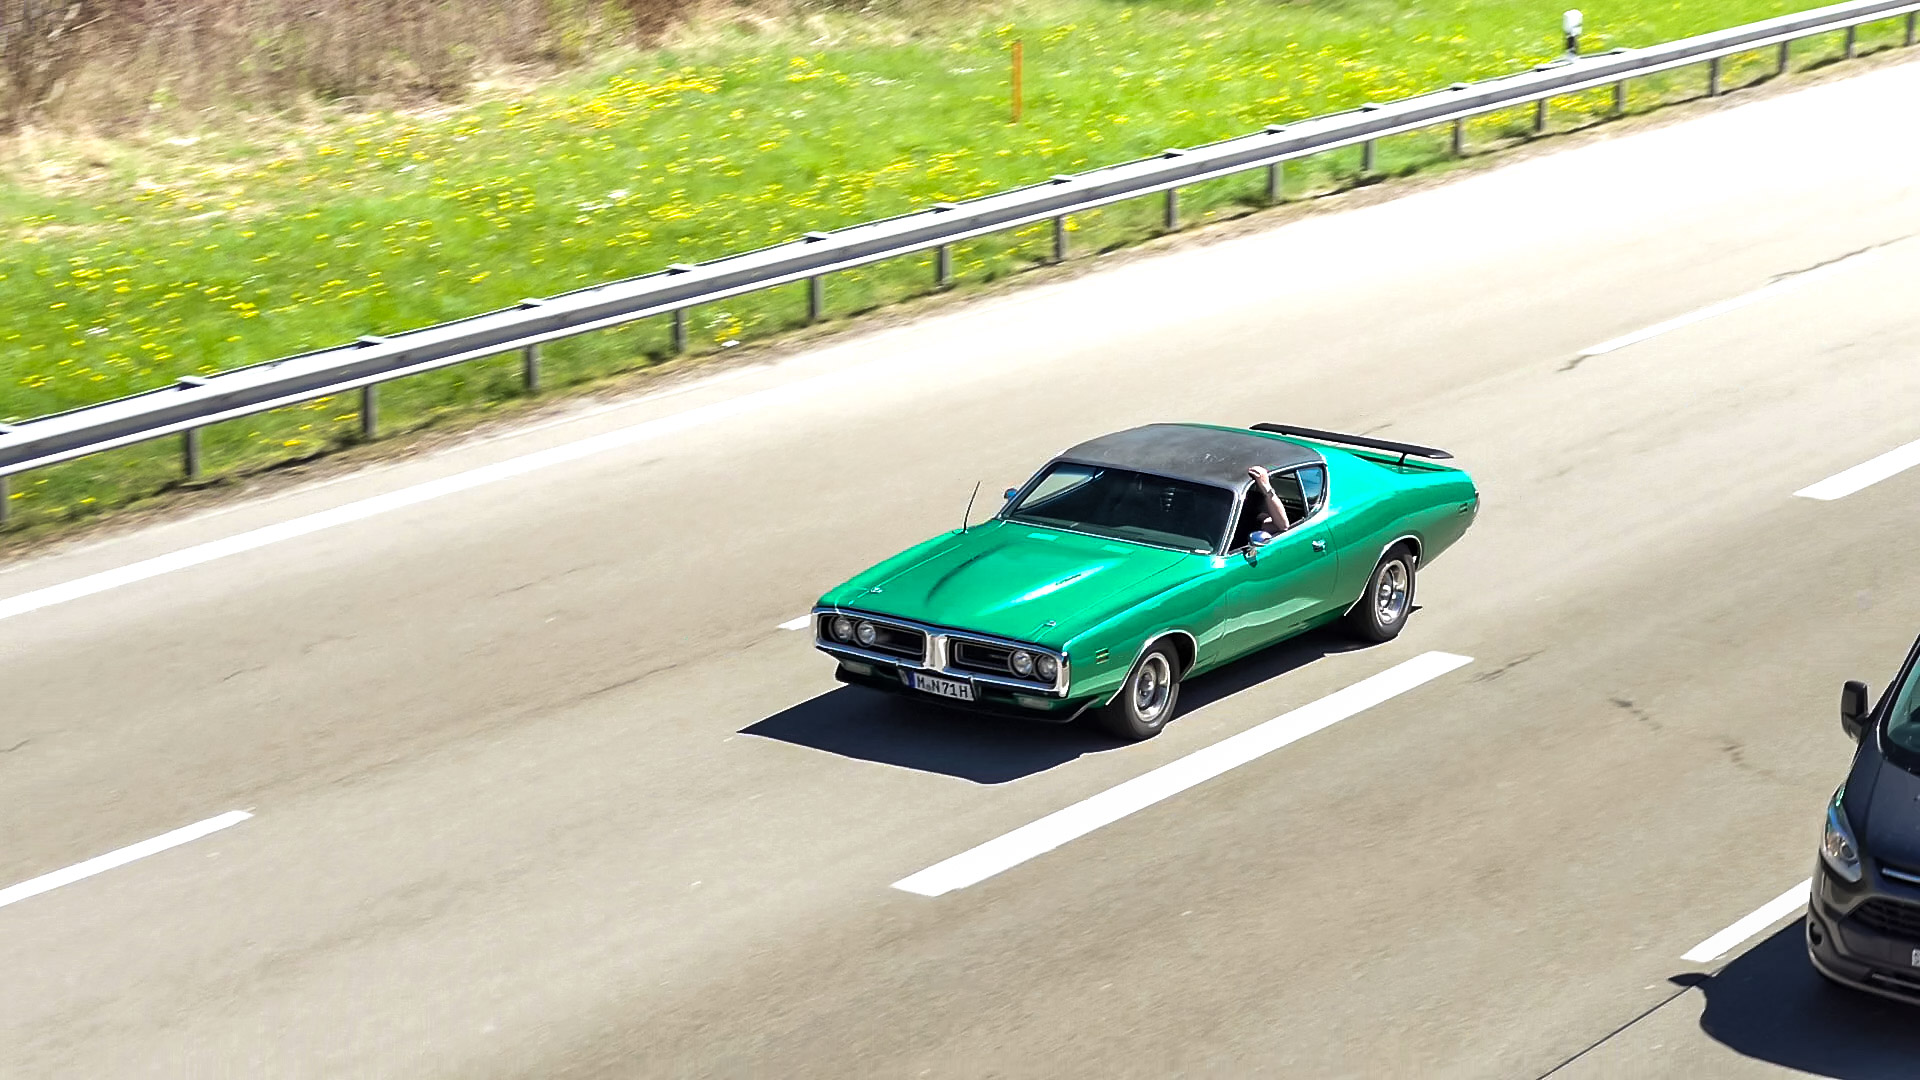 Dodge Charger 1971 - M-N-71H